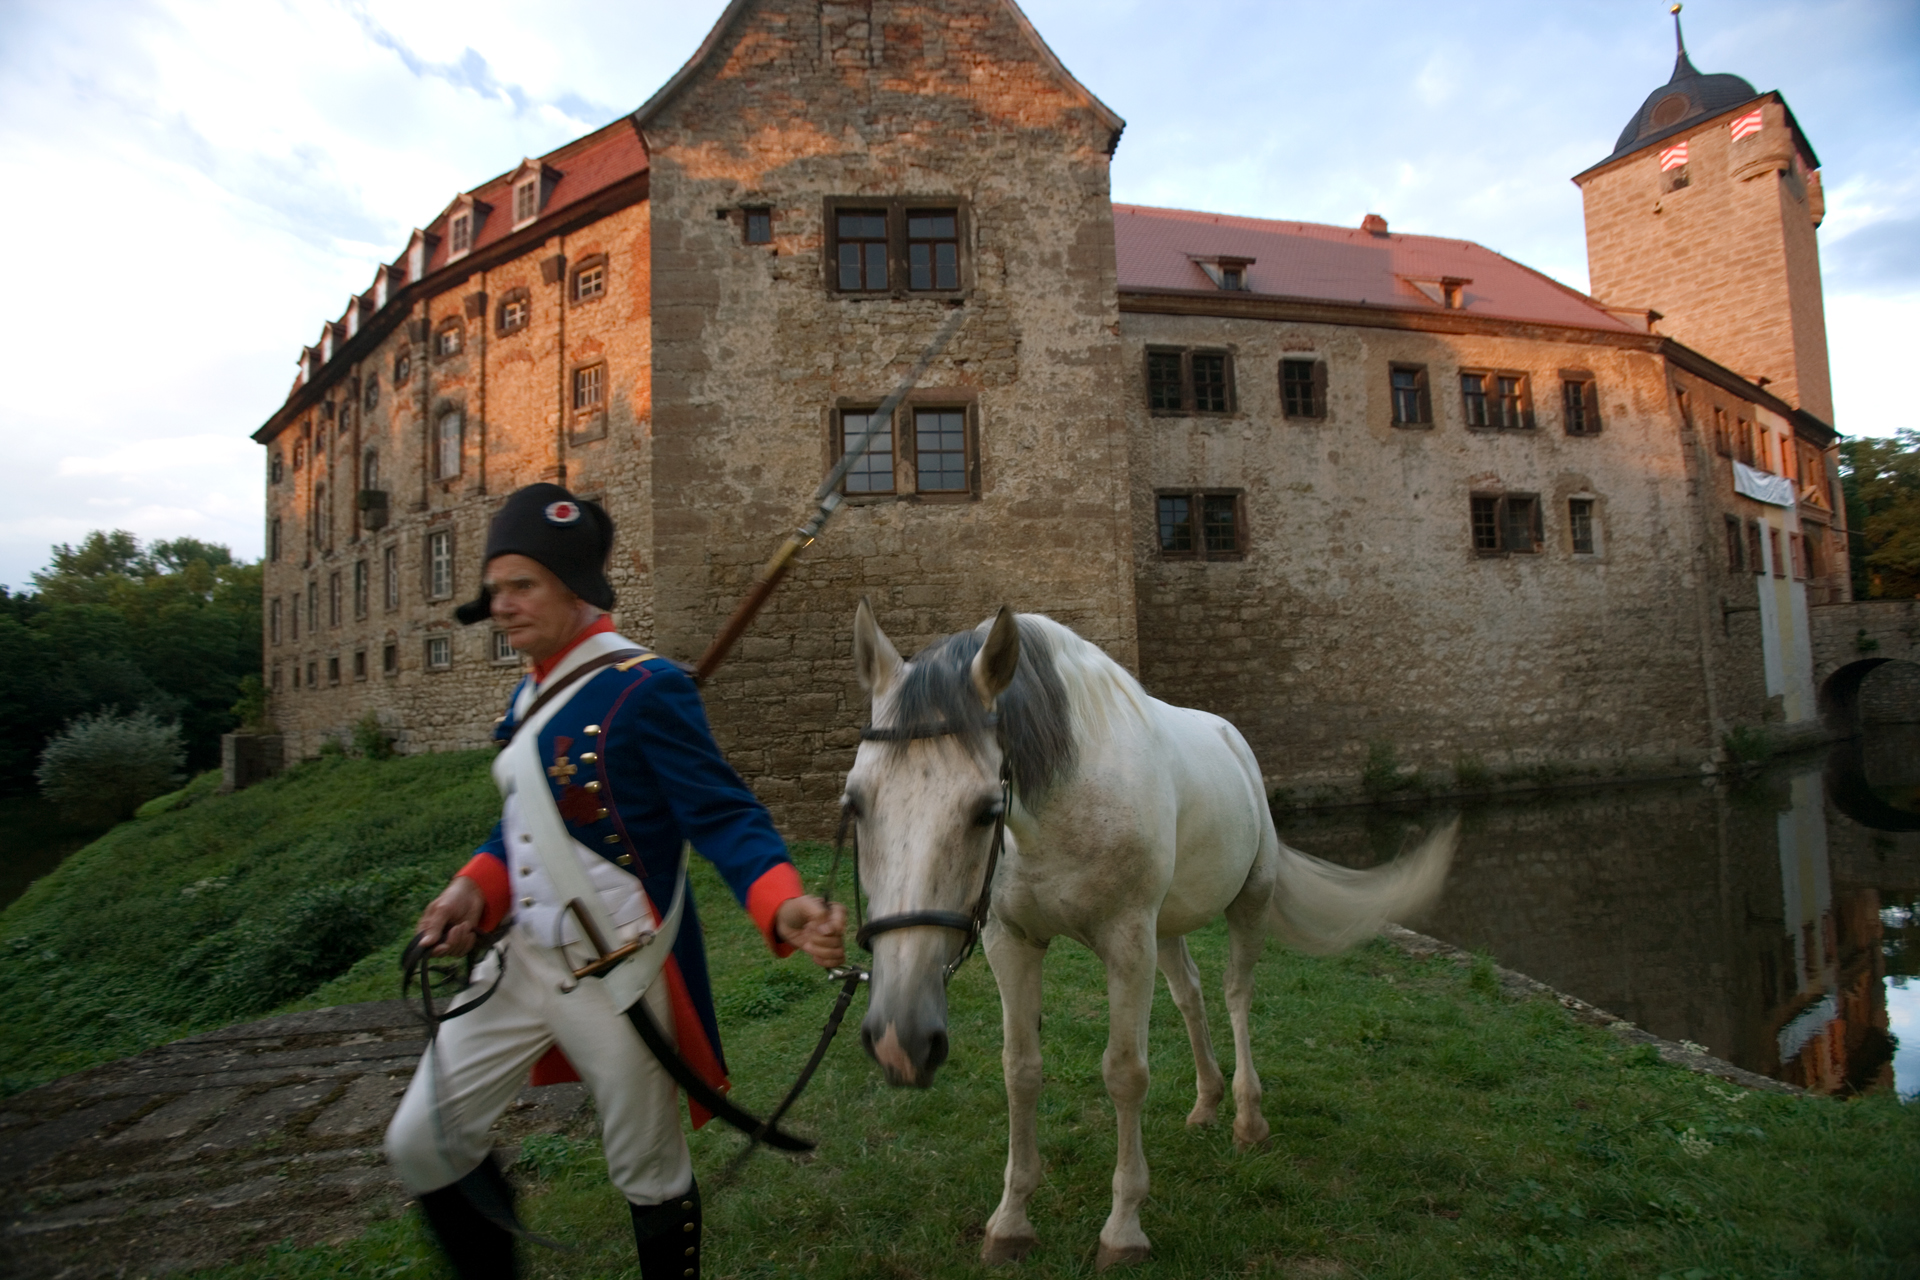 Schloss Kapellendorf, an important strategic fortress during the Battle of Jena and Auerstedt now provides a backdrop for historic re-enactments.  Krippendorf, Germany